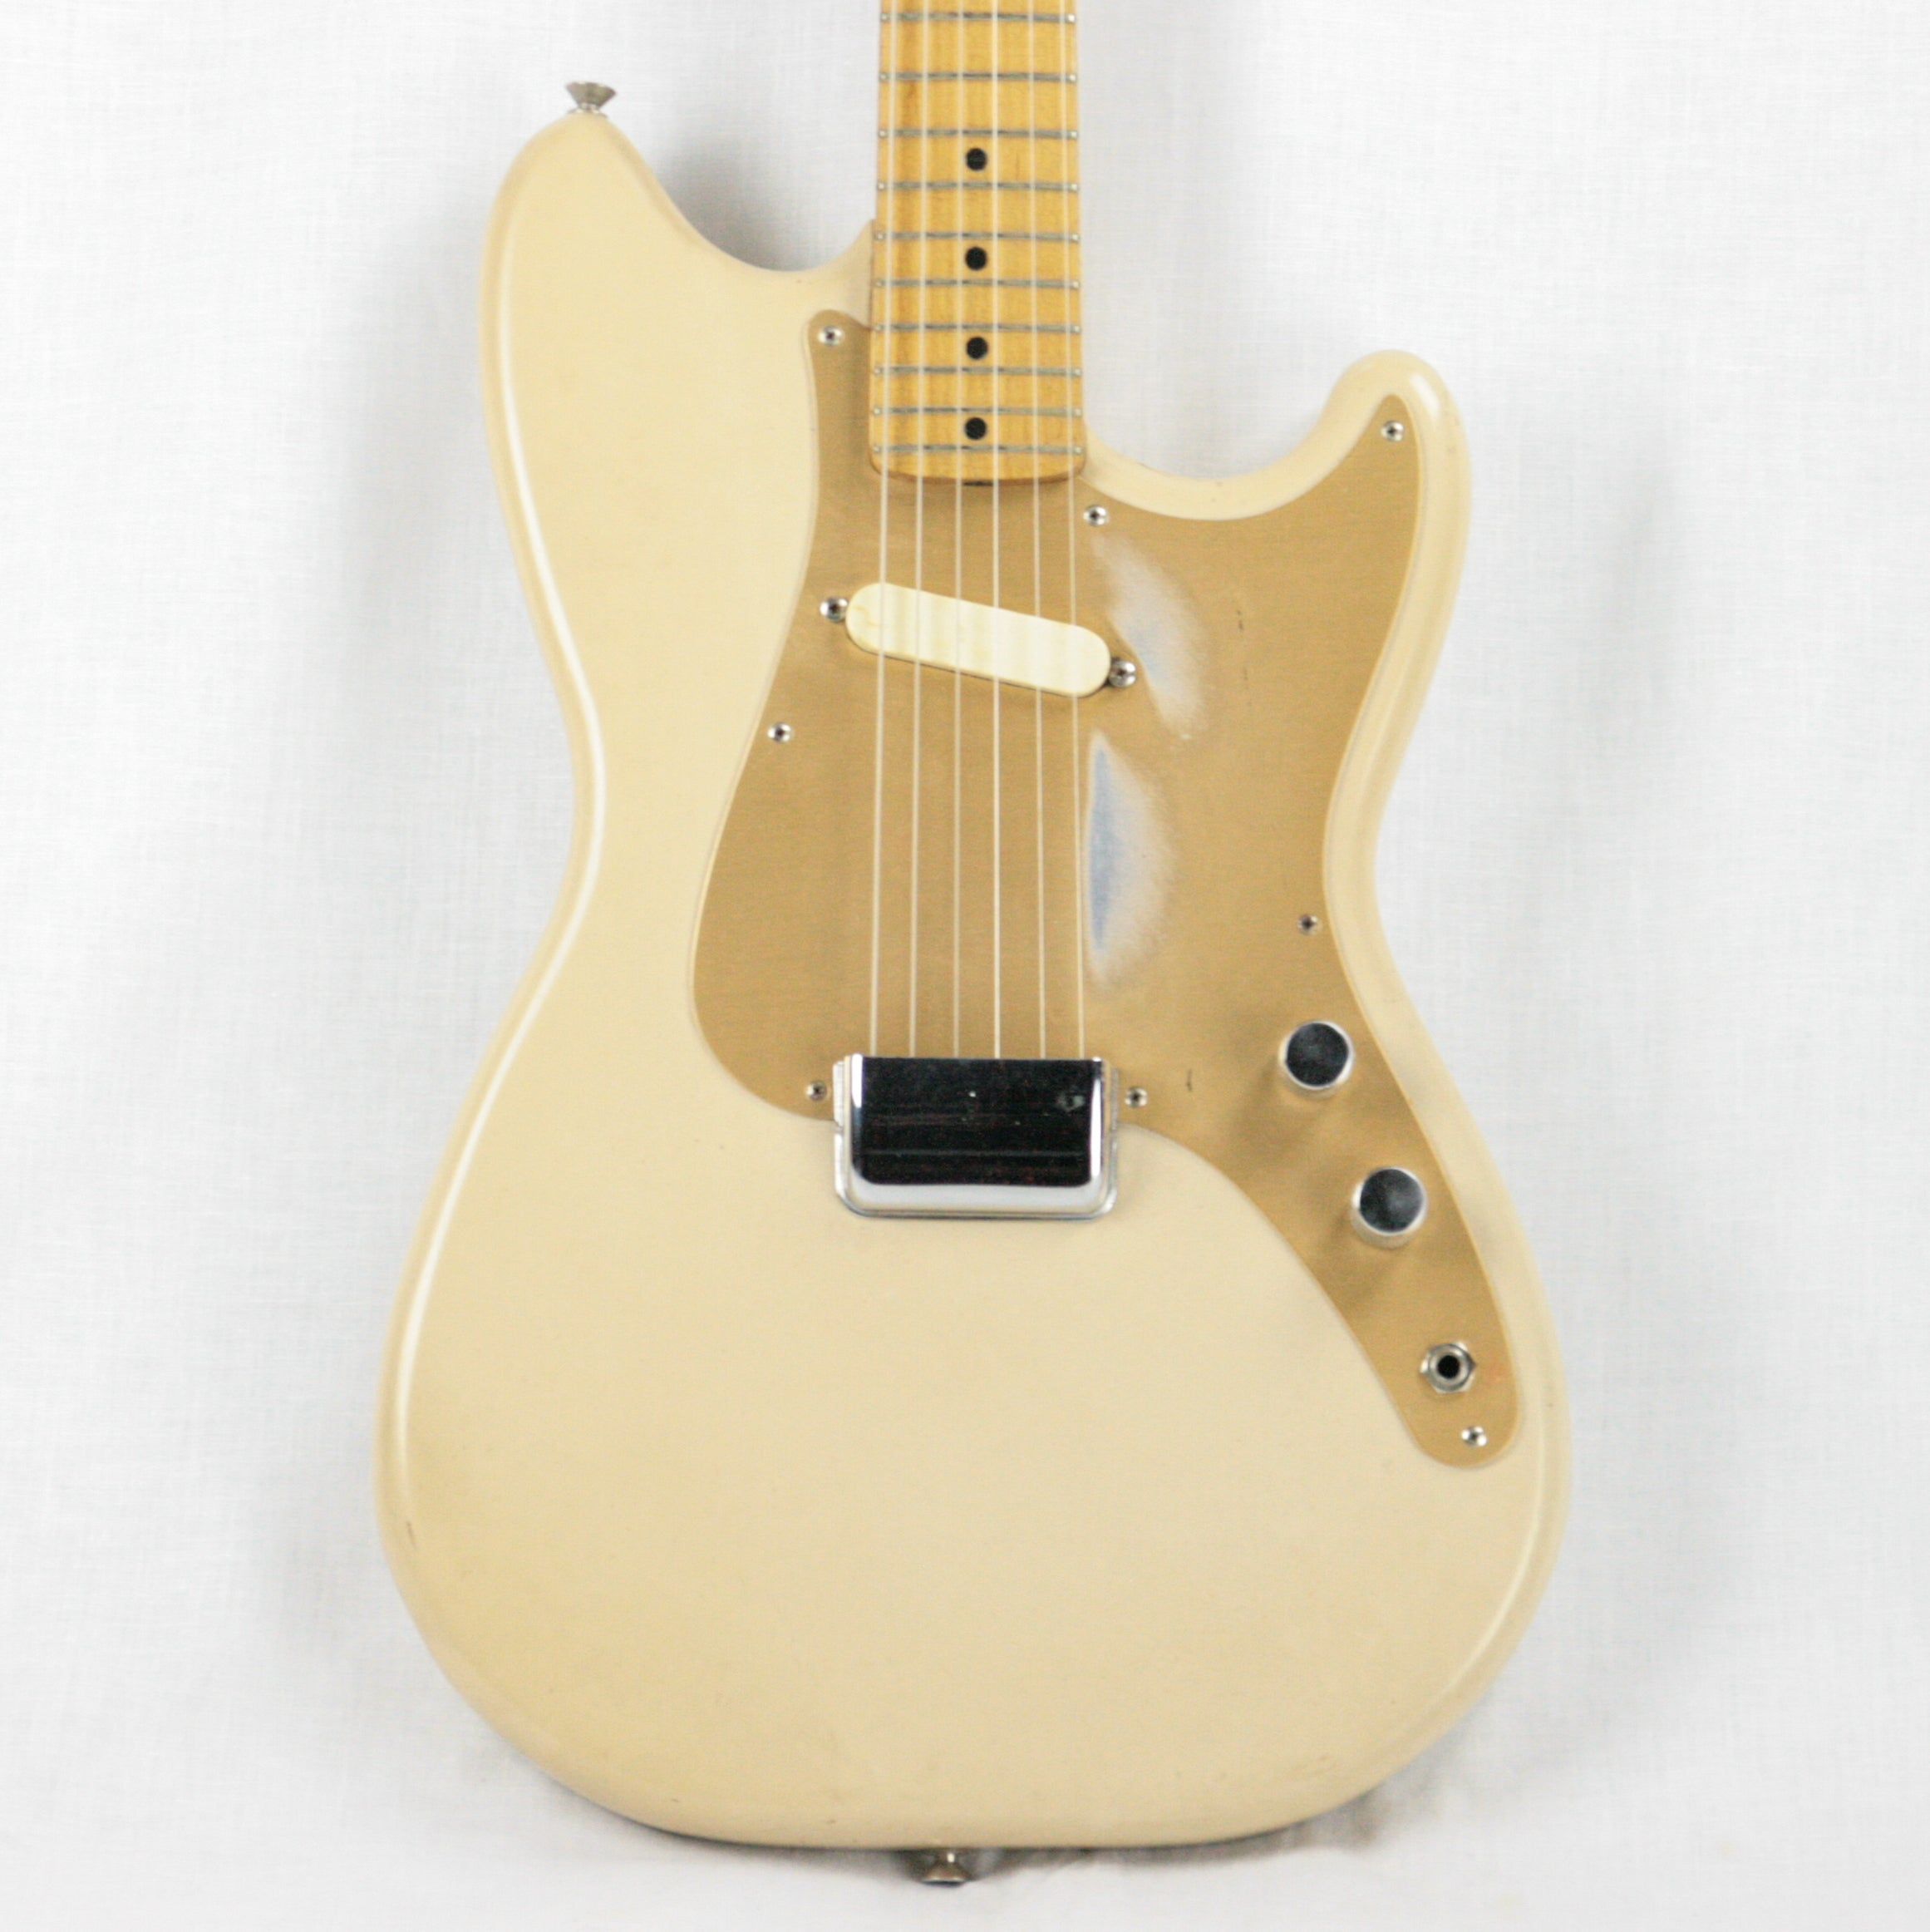 1958 Fender Musicmaster Desert Sand w/ Gold Anodized Guard Bulwin Case! duo sonic 1pu